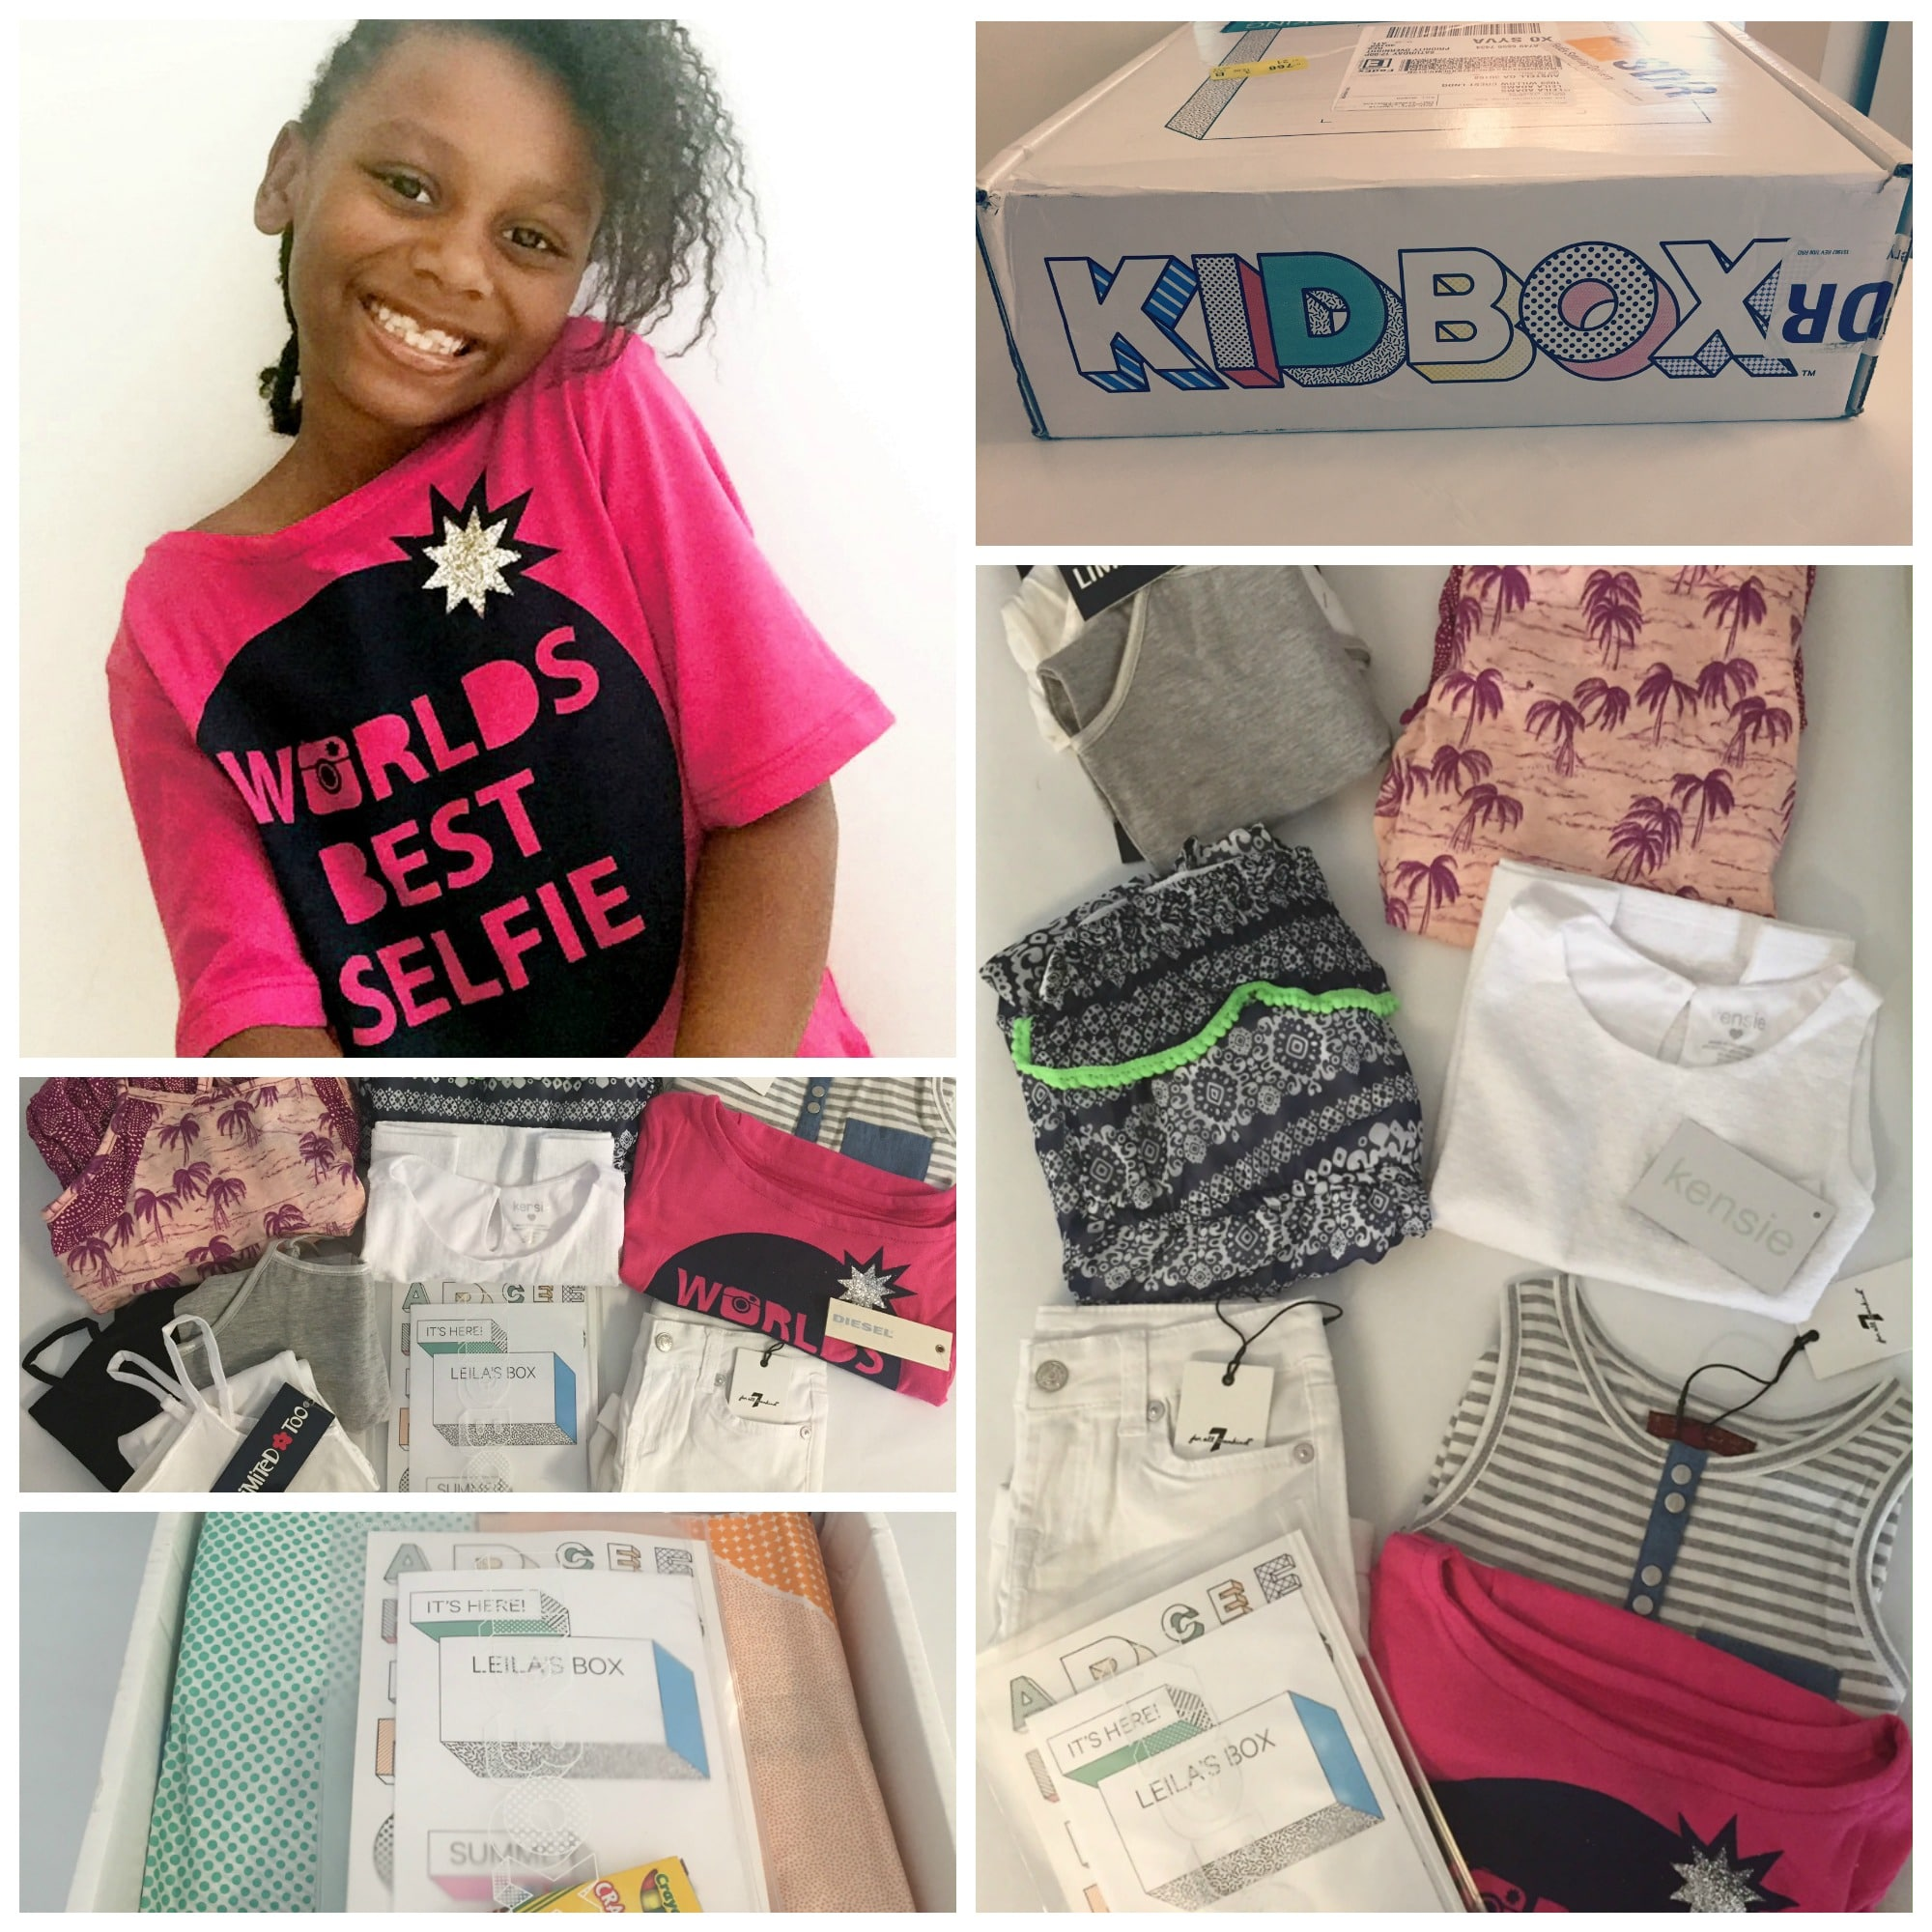 Style Box, Savings, and Social Good - How we #UnpackHappy